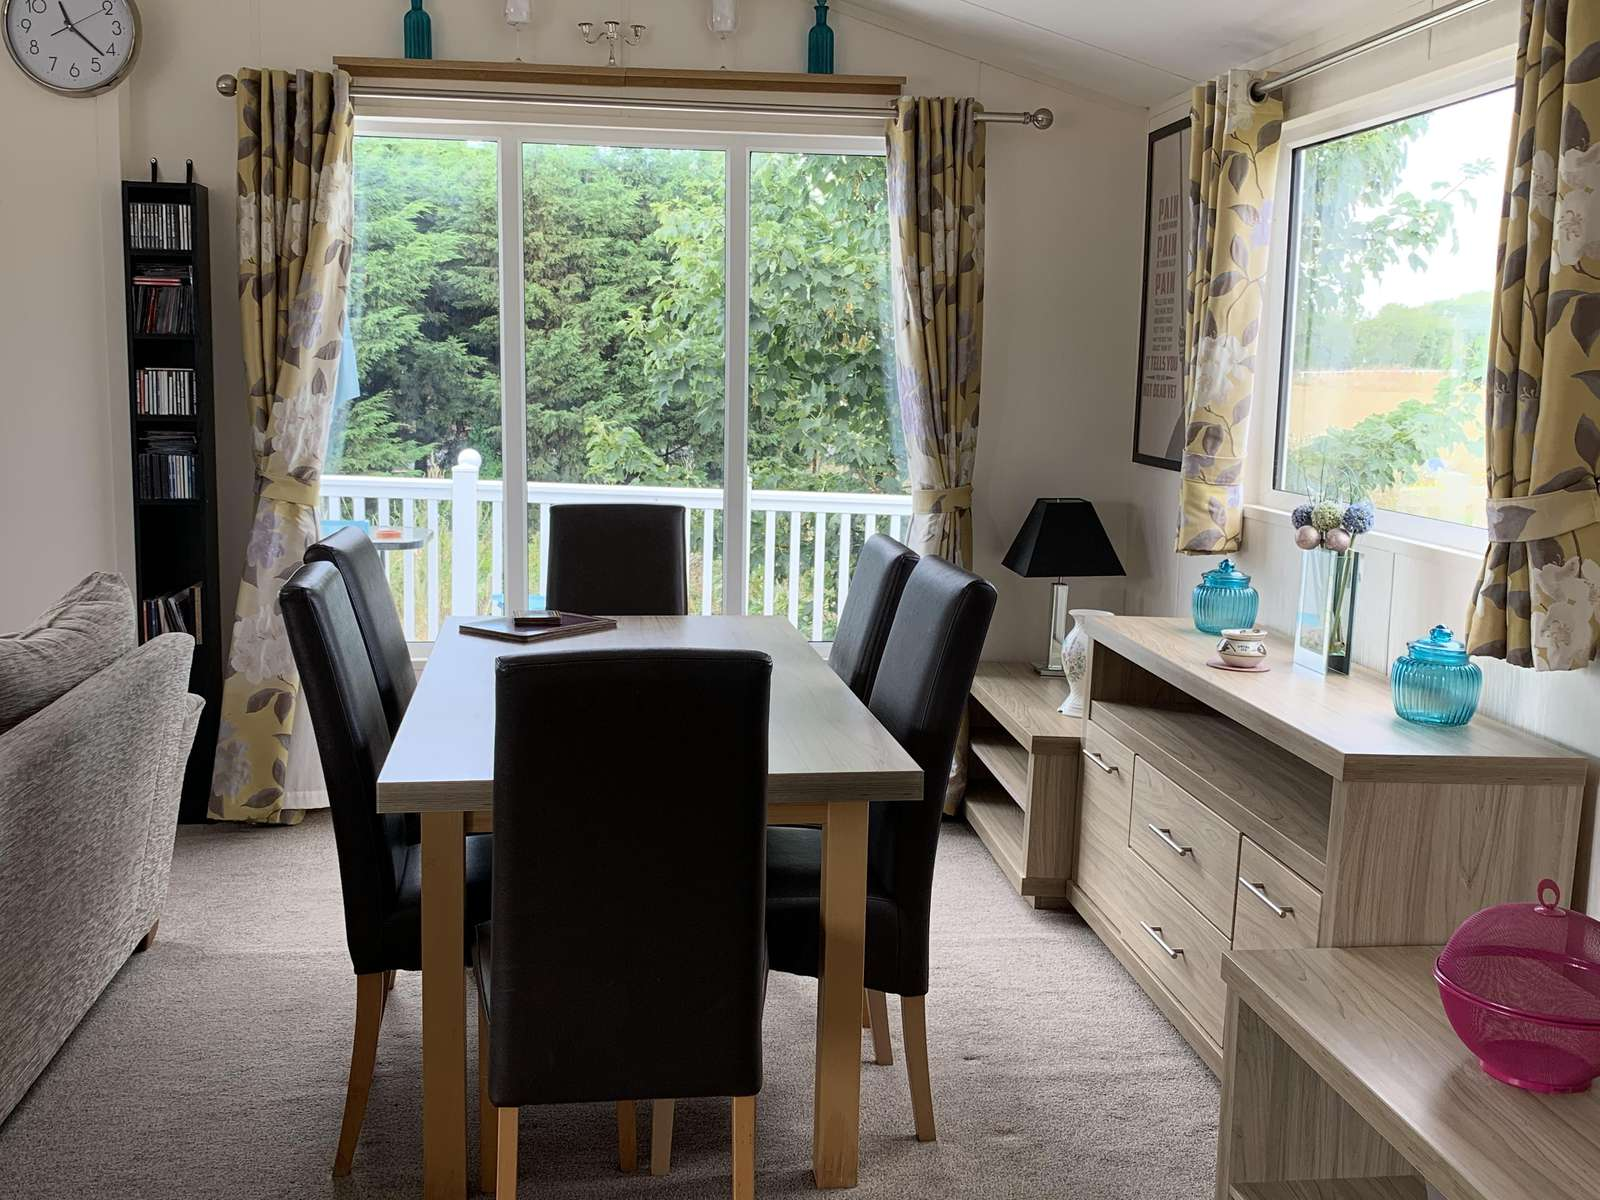 Perfect place to dine with family and friends in this self-catering accommodation